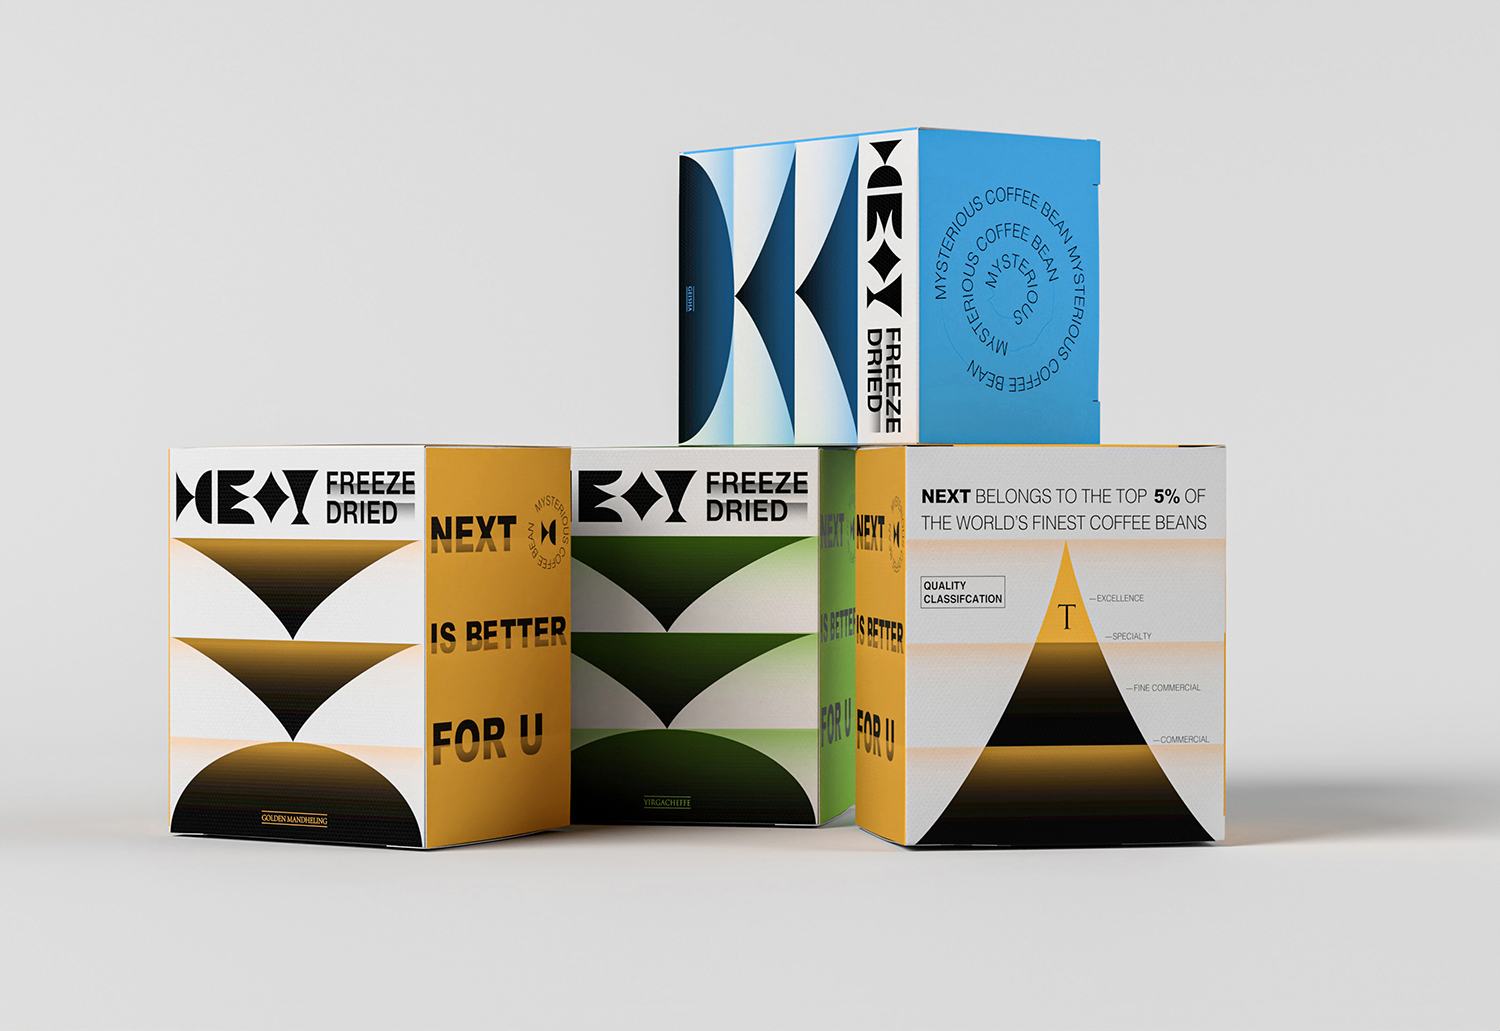 Branding and Packaging Design For Next Coffee Brand by B&W Graphic Lab